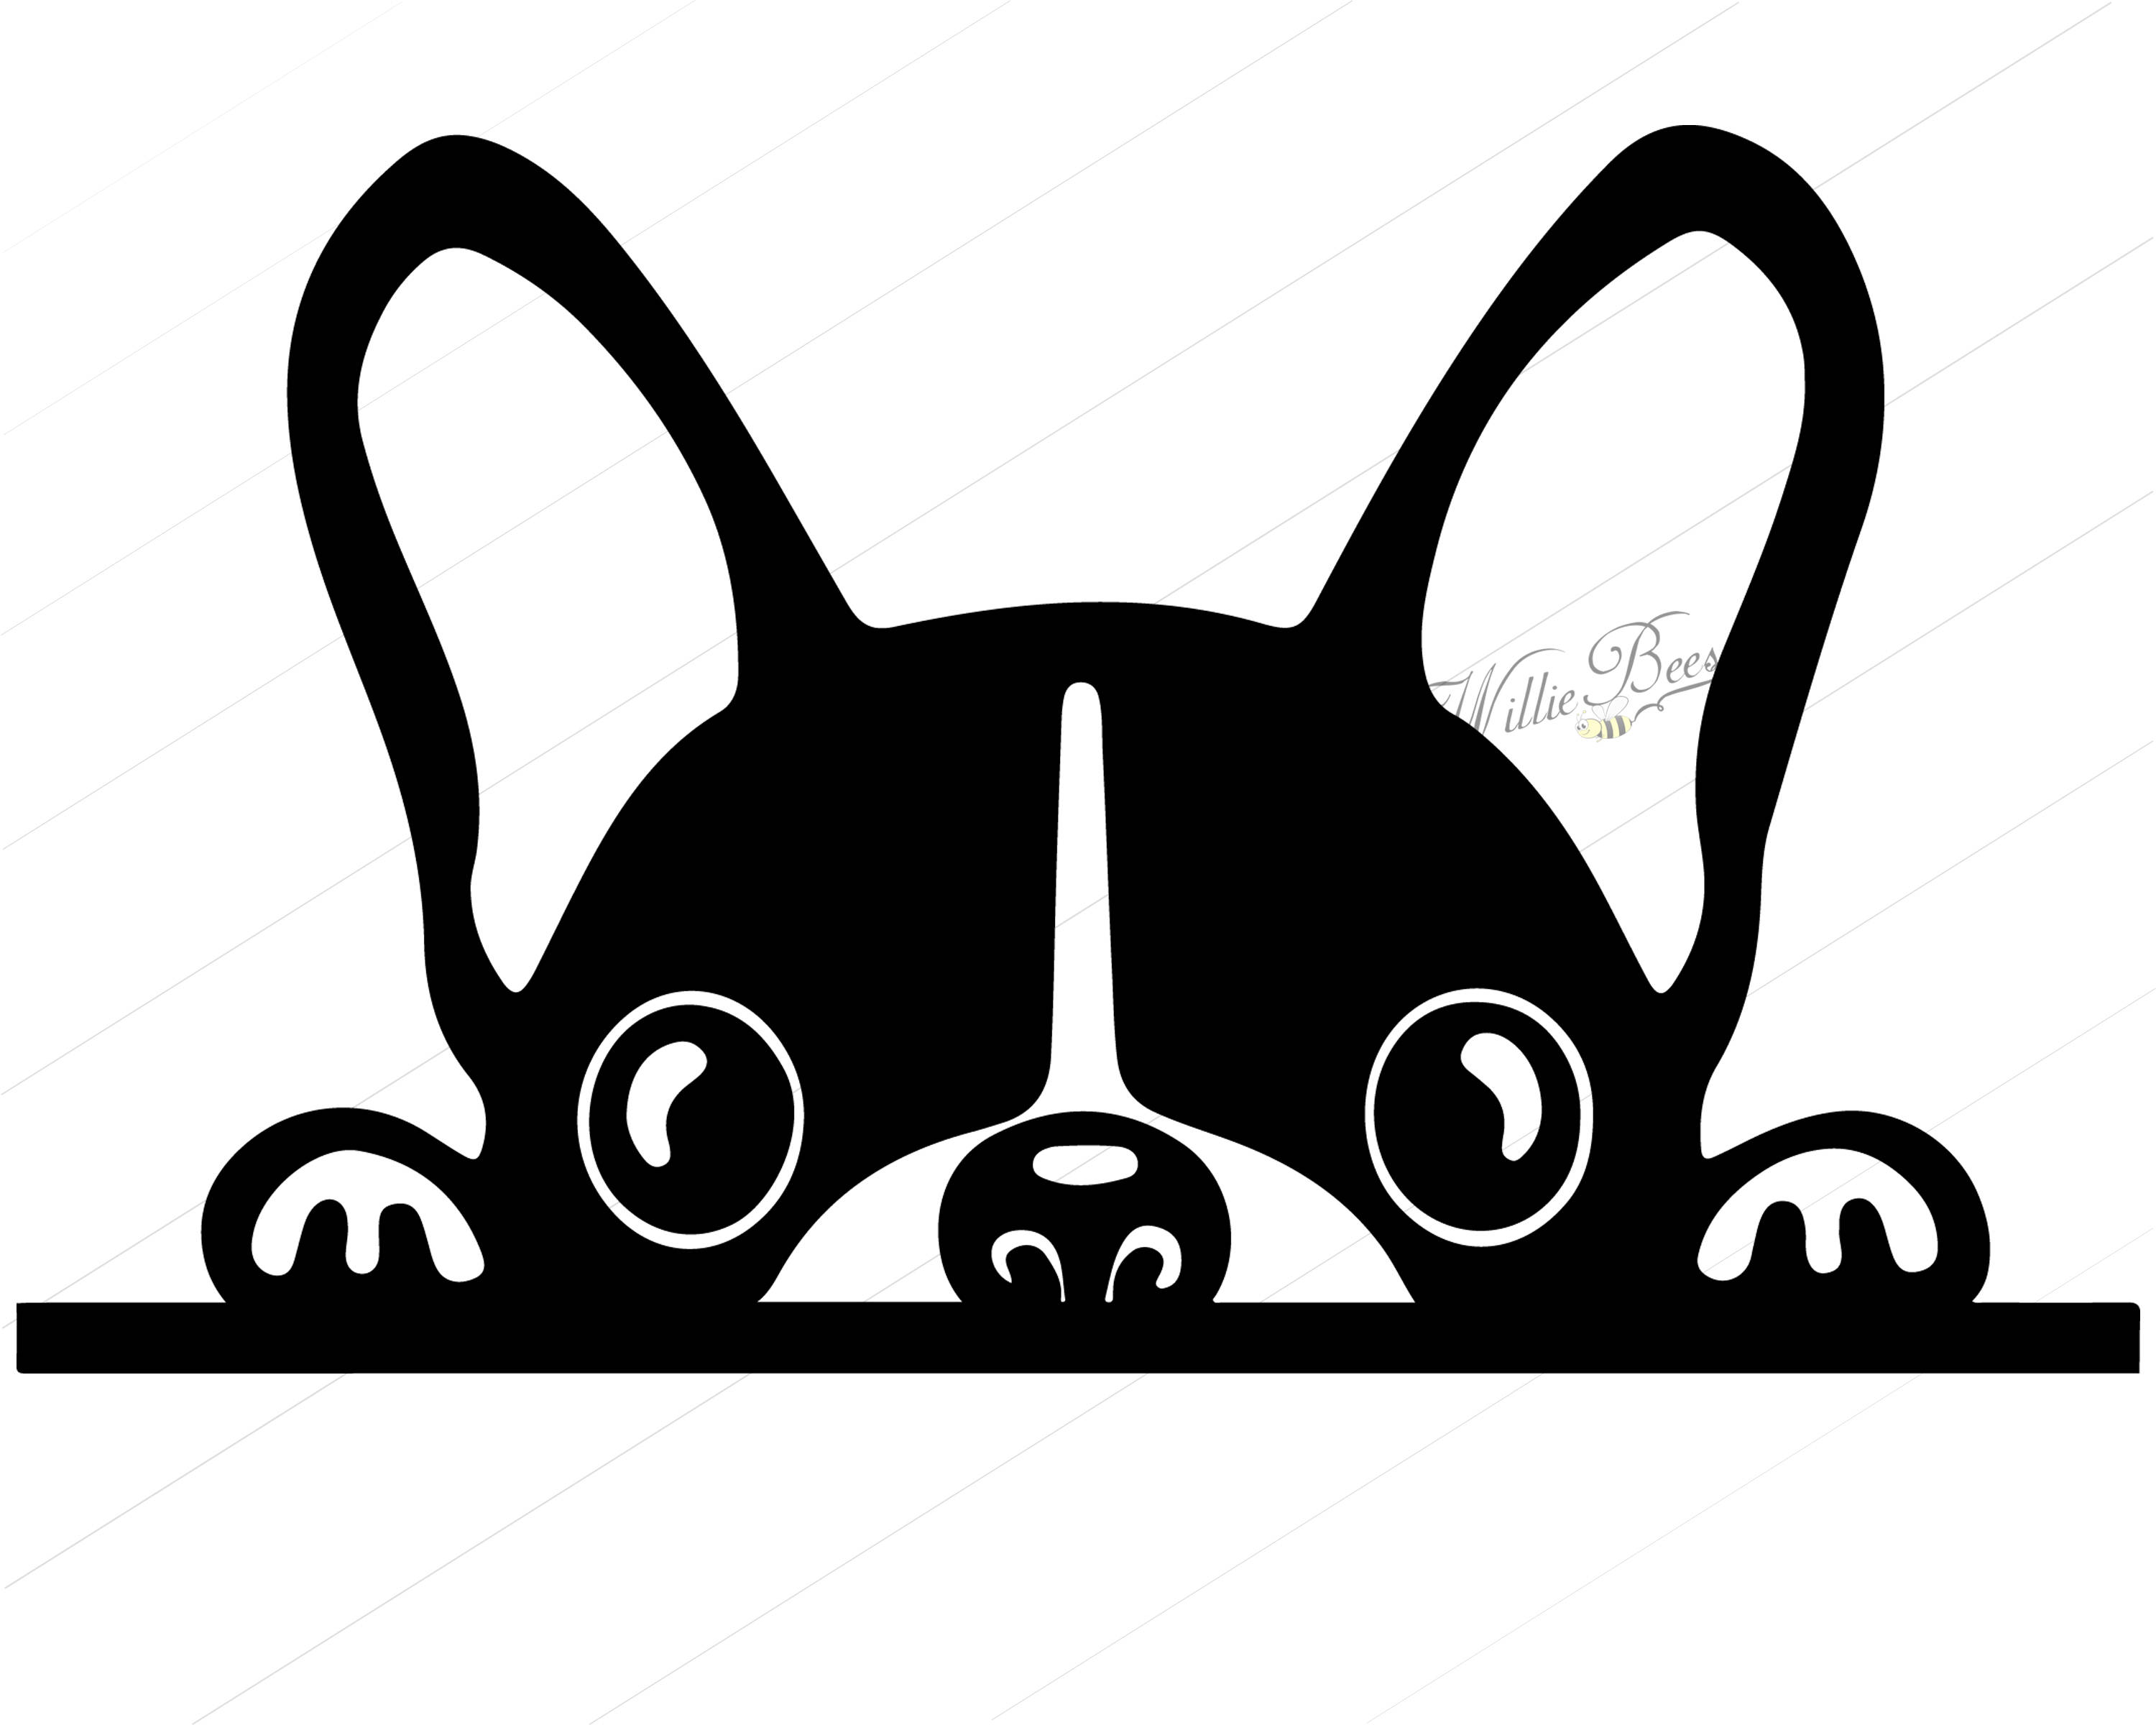 Peeking Dog SVG Silhouette Clipart, Canine, Family Pet, Dog, Peeking Dog,  Dog SVG, Dog Clipart, 12 inches, Instant Download